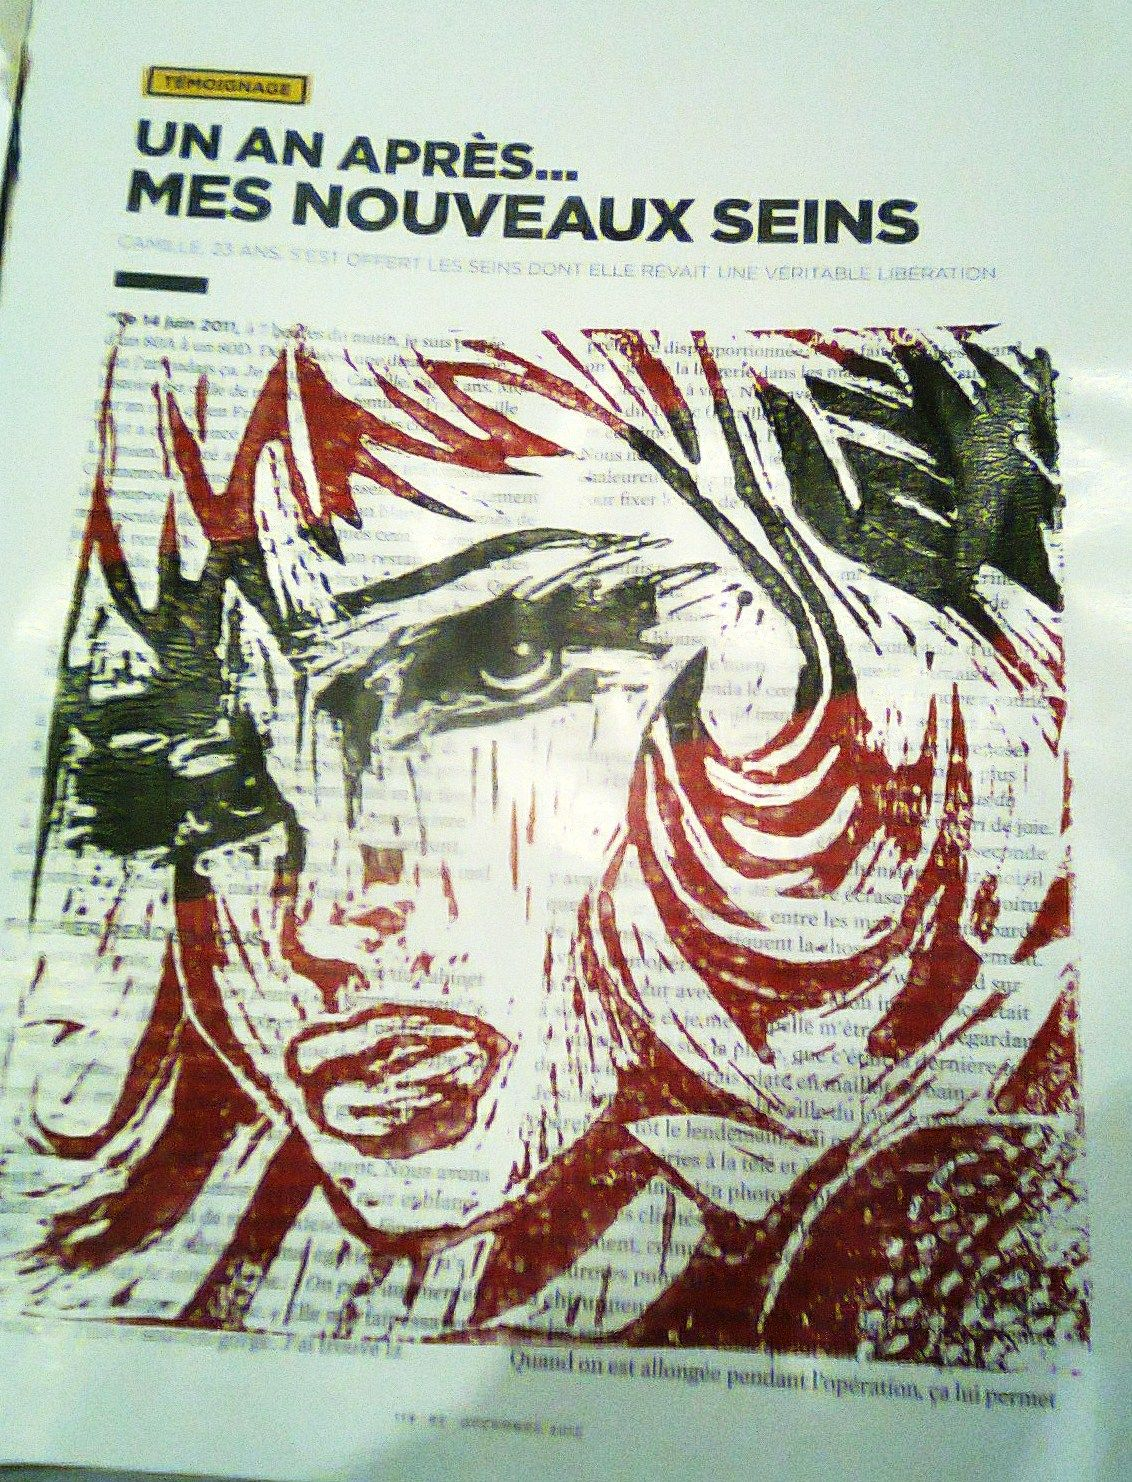 The Girl with the head ribbon (Lichtenstein) revisité - Linogravure & Glamour